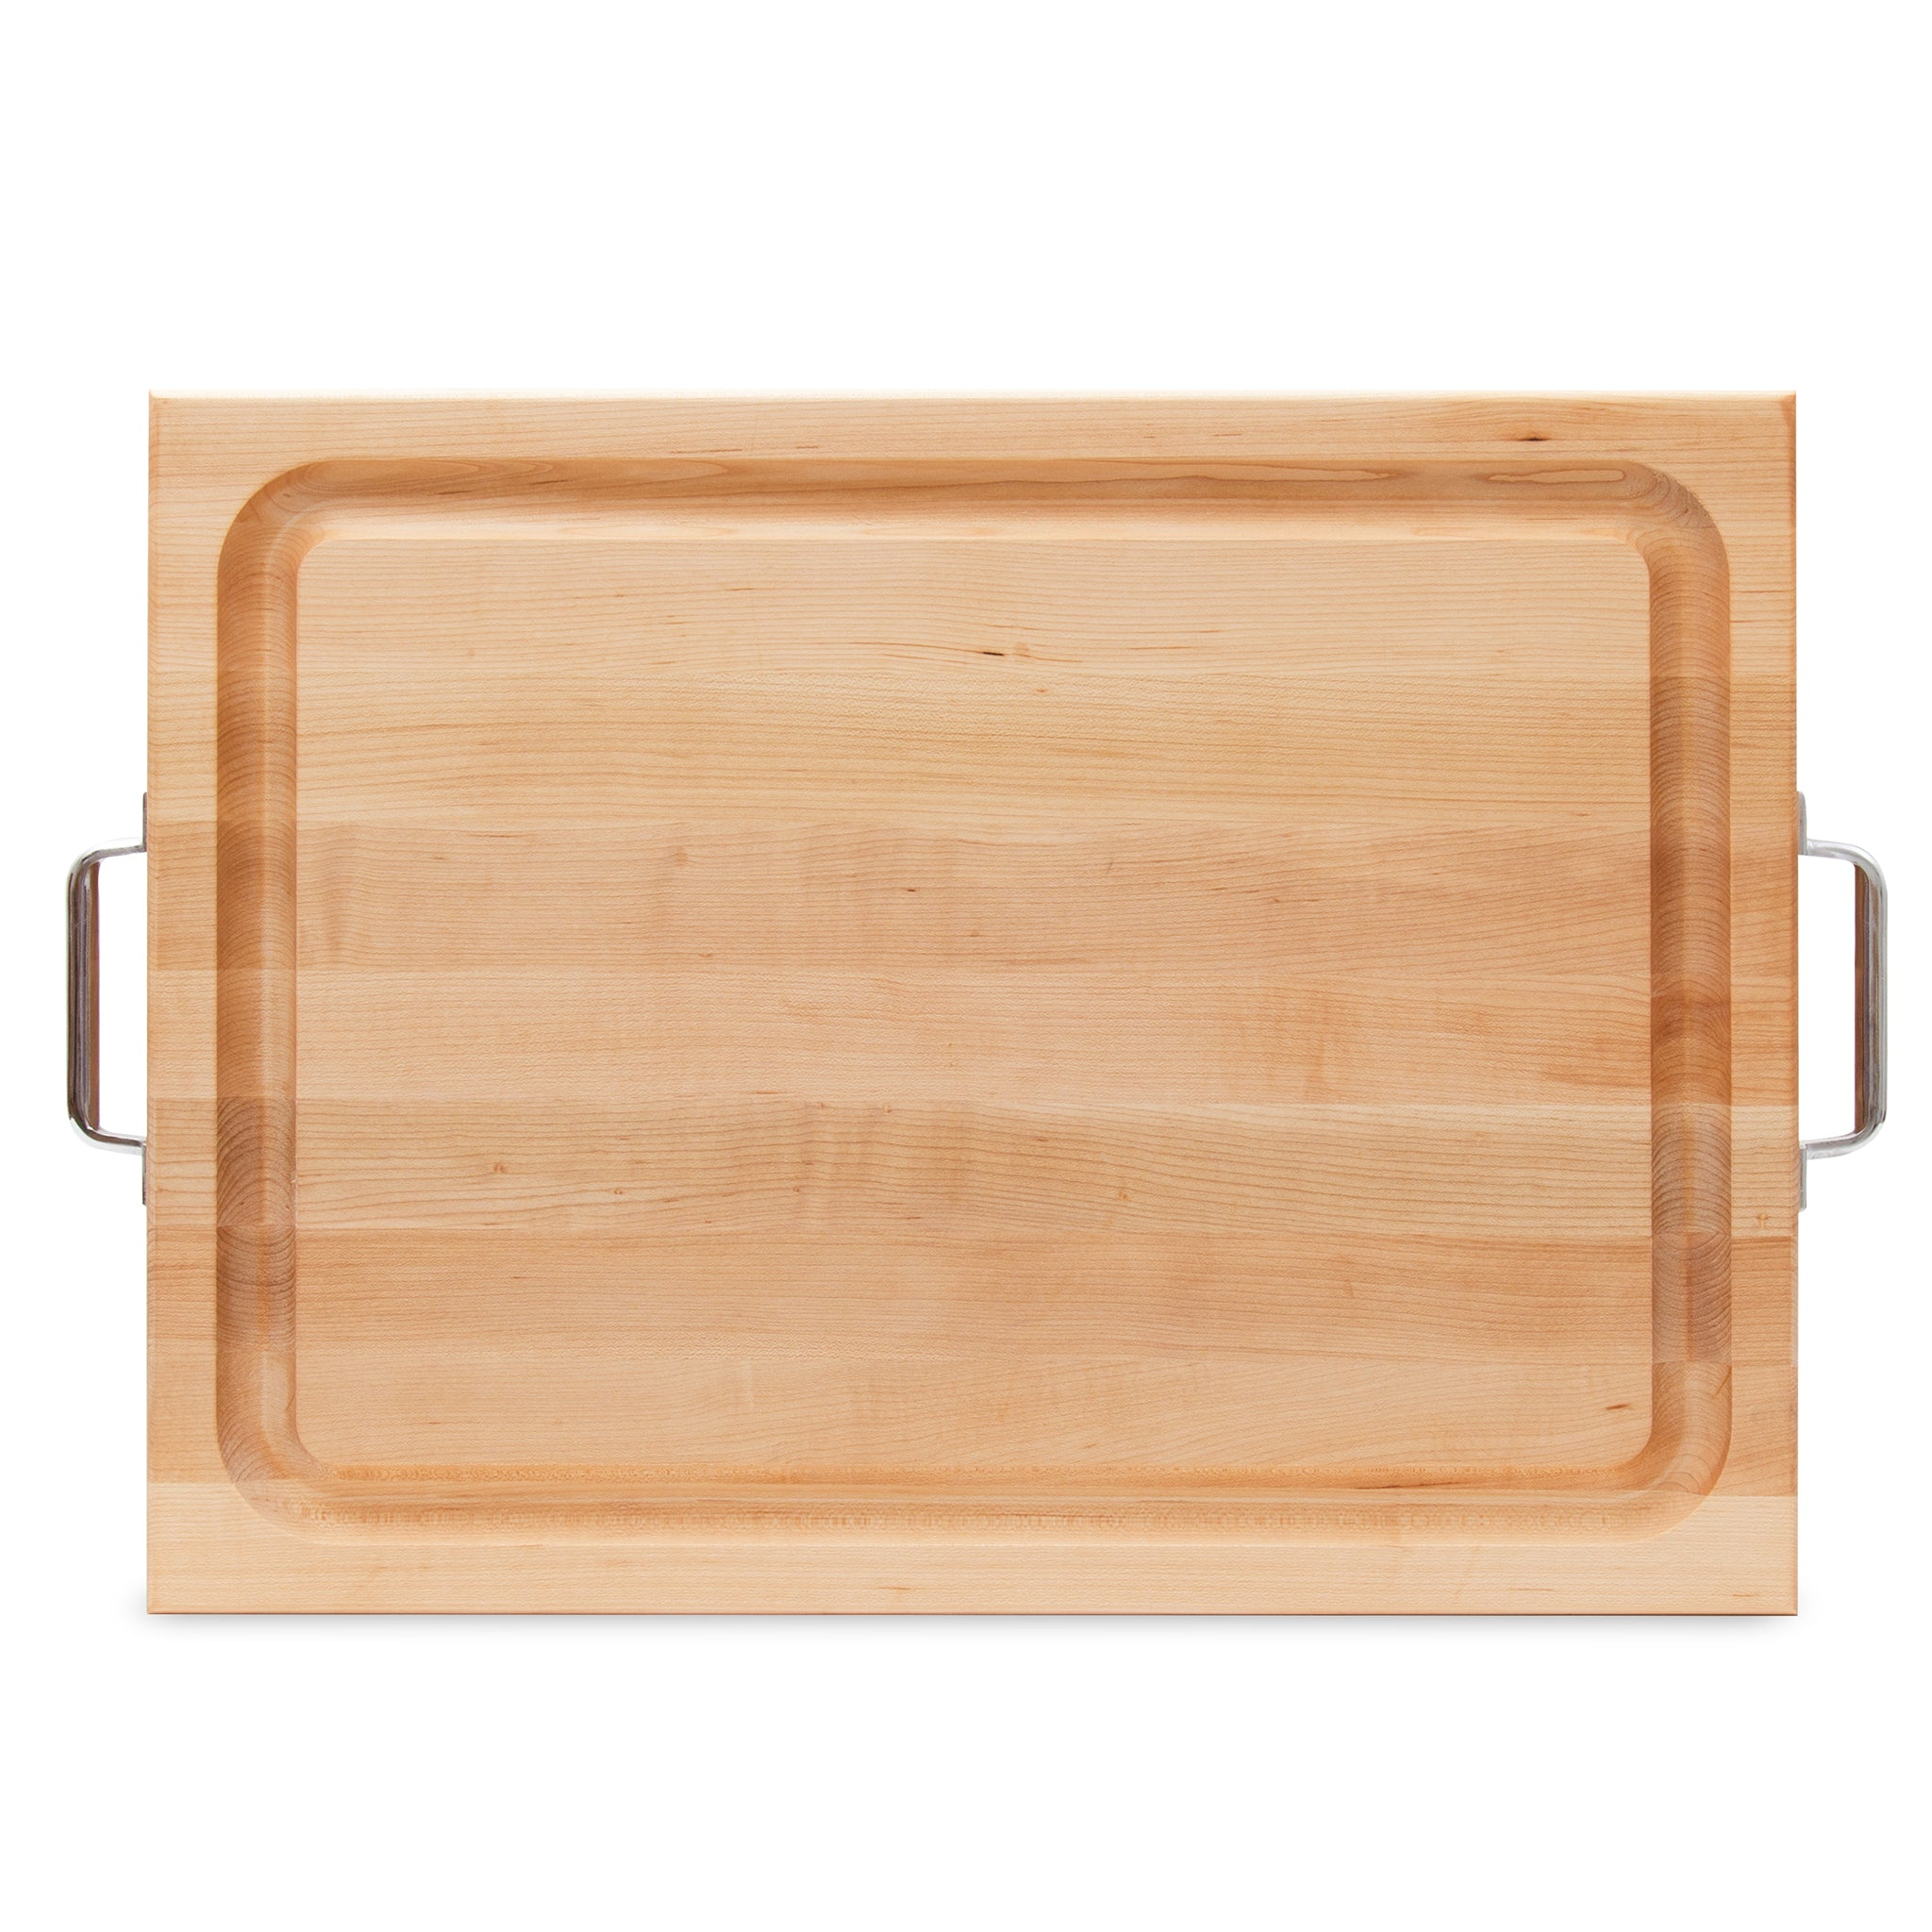 Maple Rafr Cutting Board With Juice Groove Stainless Handles